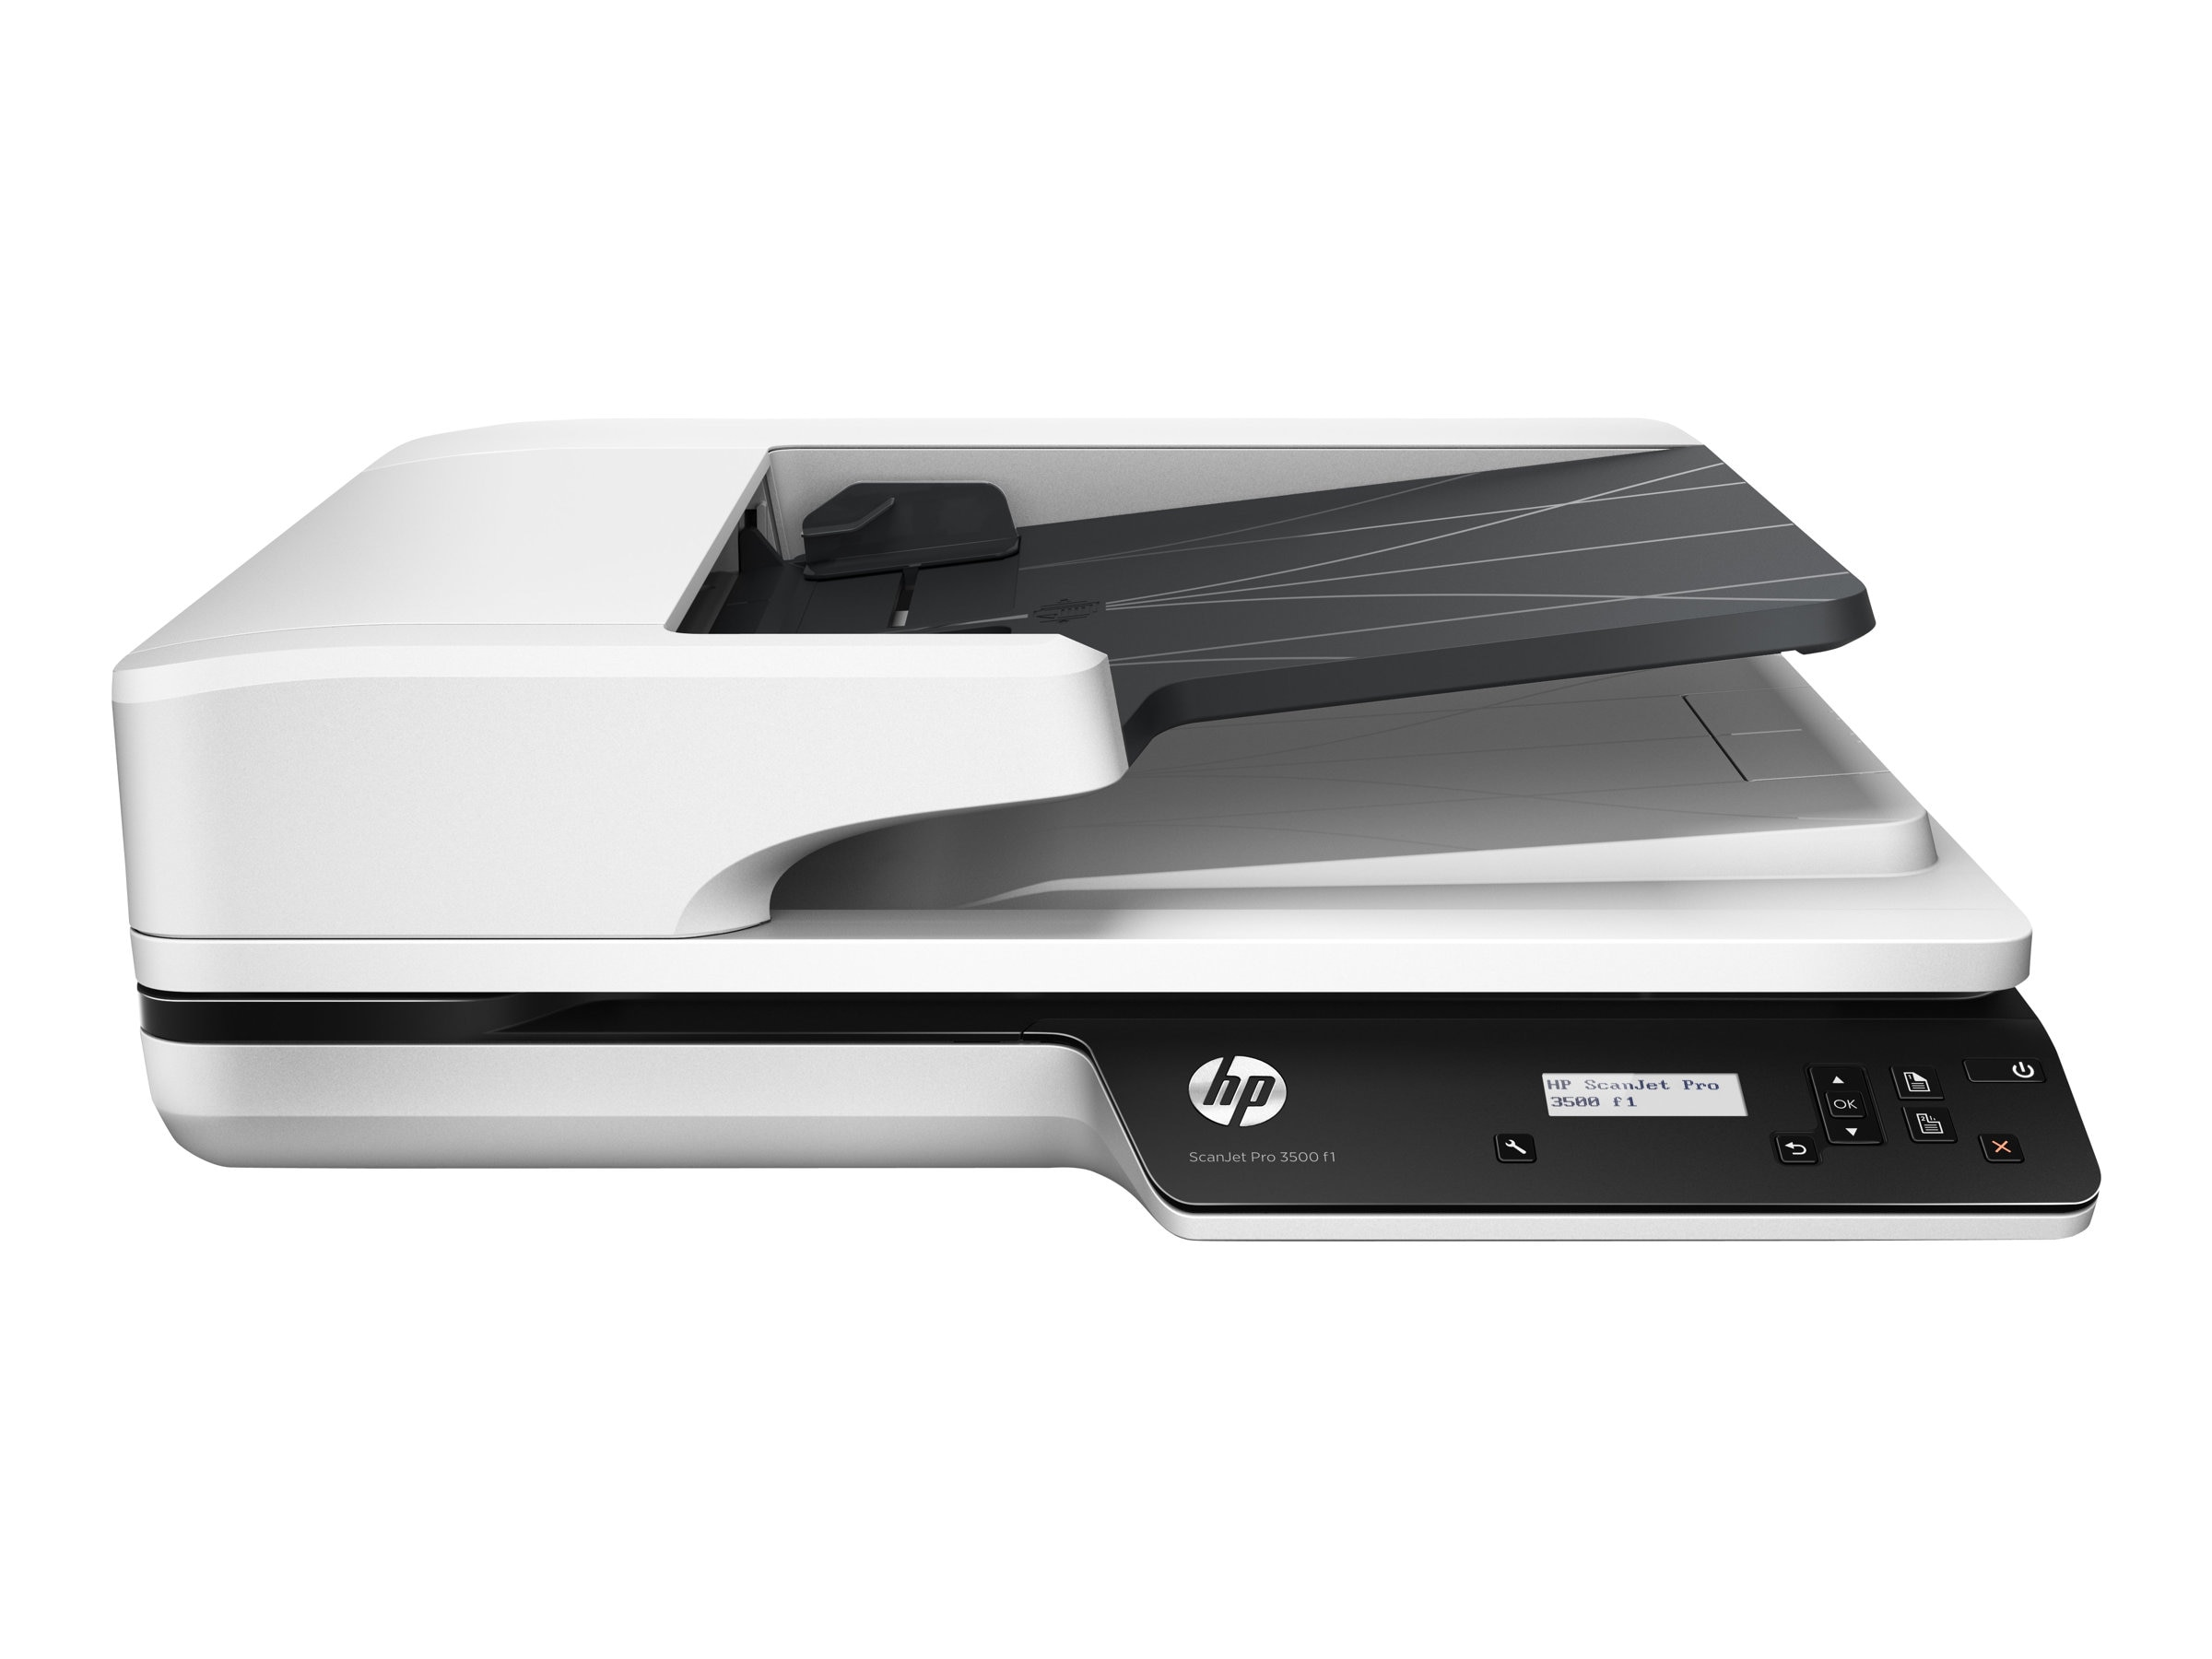 HP ScanJet Pro 4500 FN1 Network Scanner, L2749A#BGJ